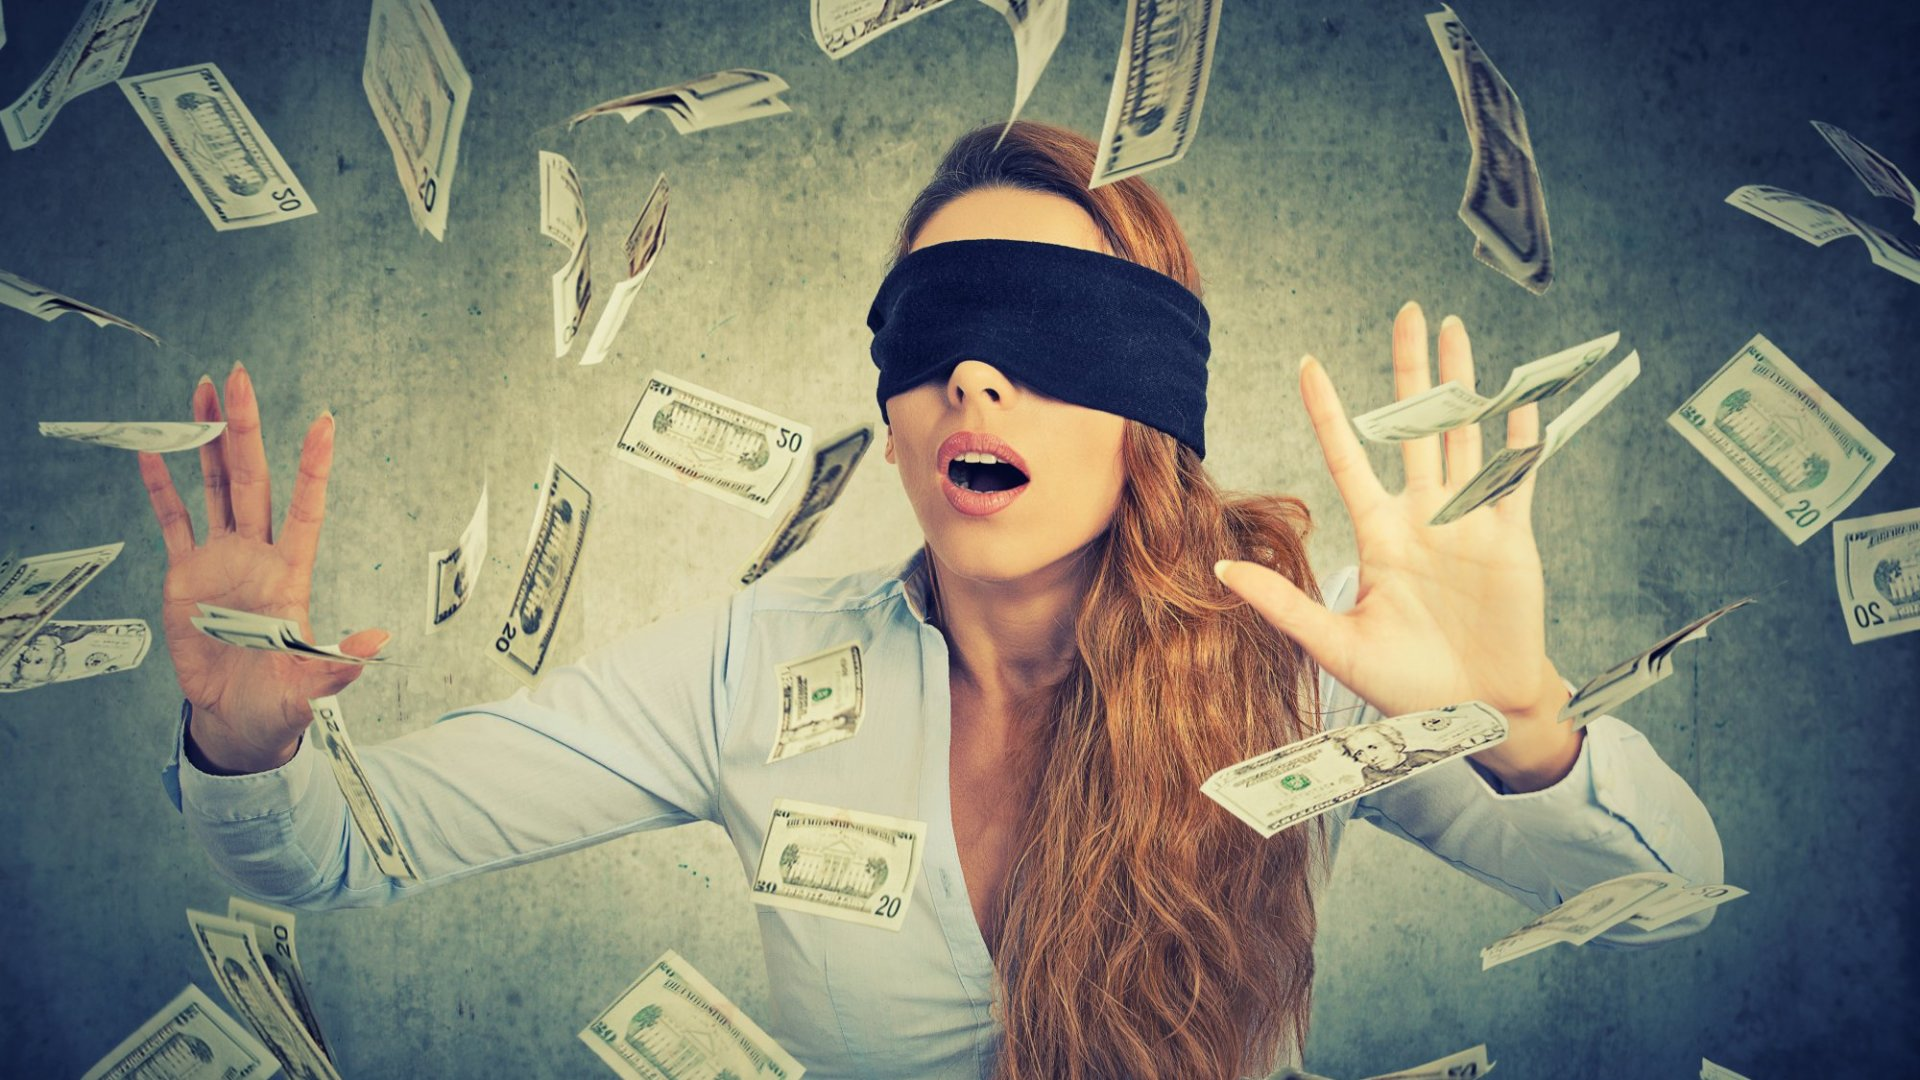 Don't go funding your business blindfolded. Know the options and get help.